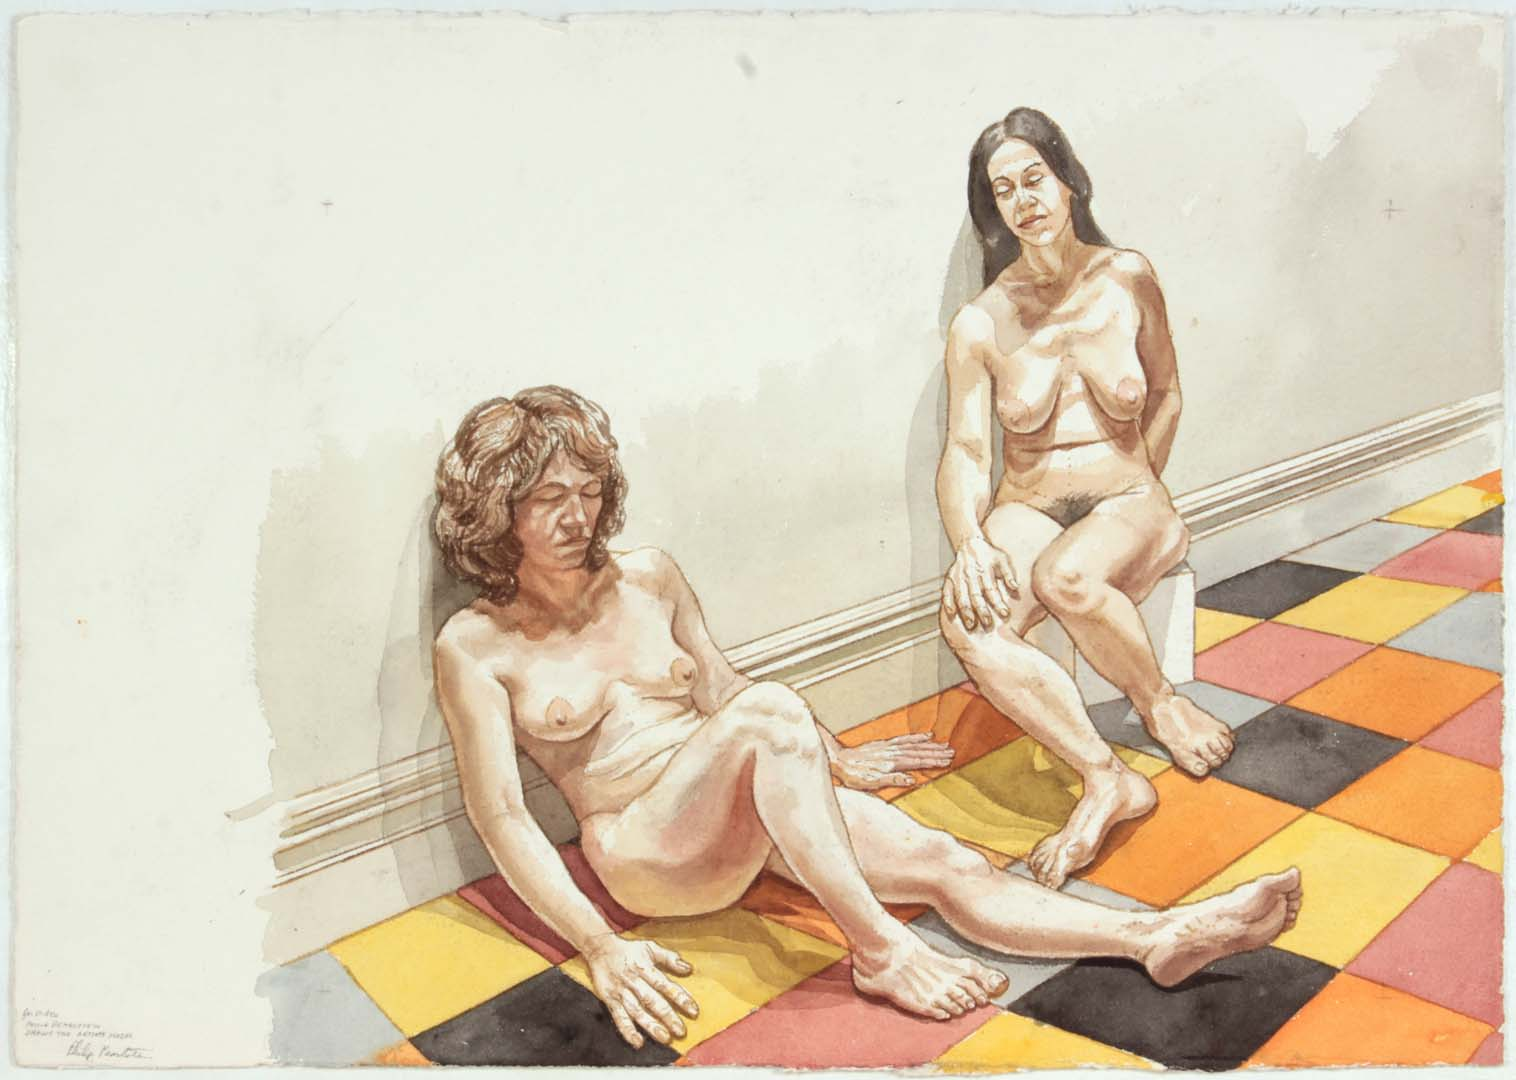 Two Females Models Leaning on Wall Watercolor on Paper